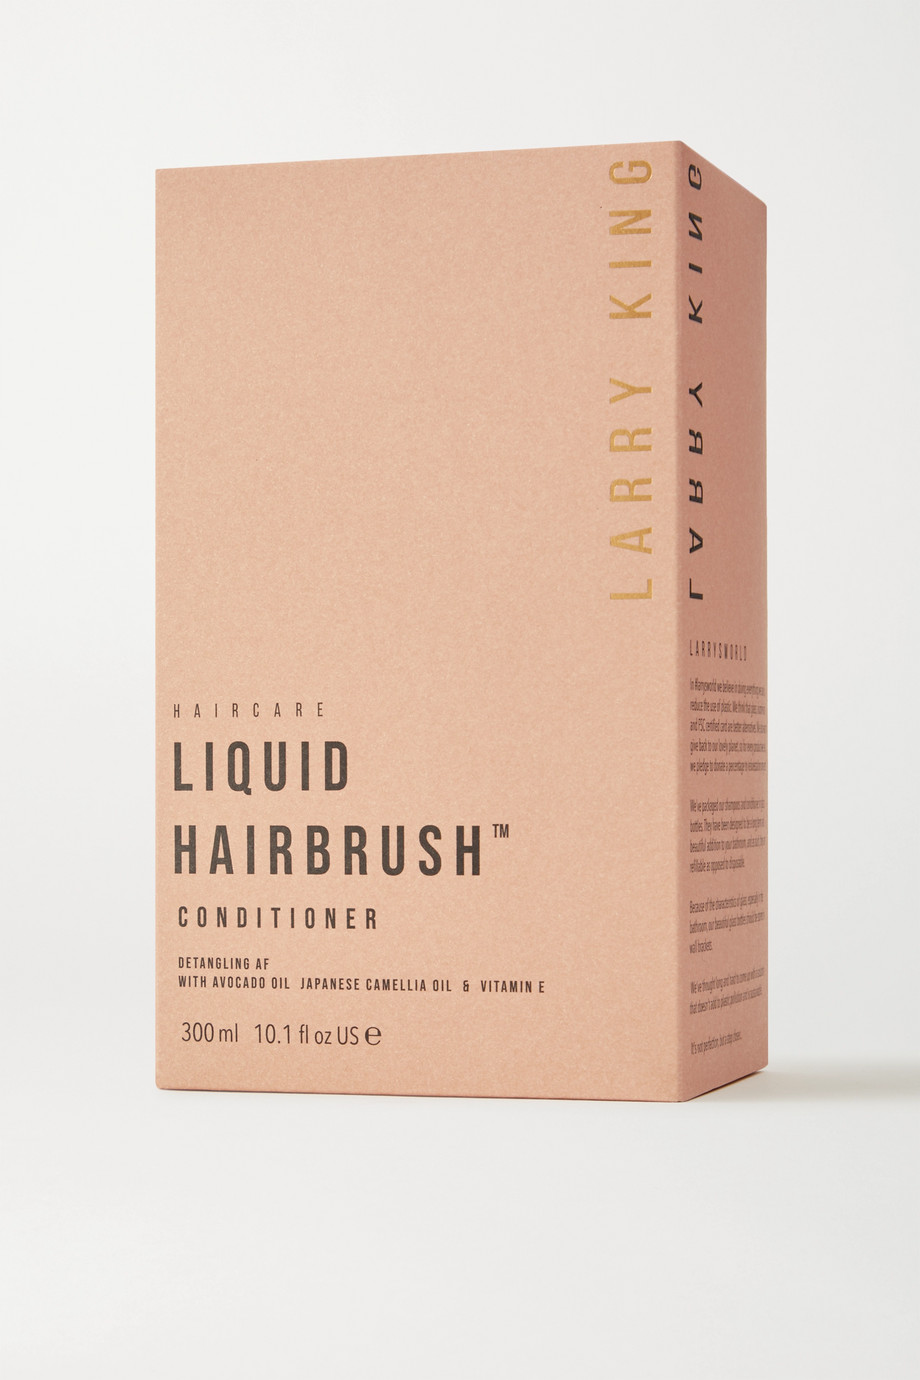 LARRY KING Liquid Hairbrush Conditioner, 300ml